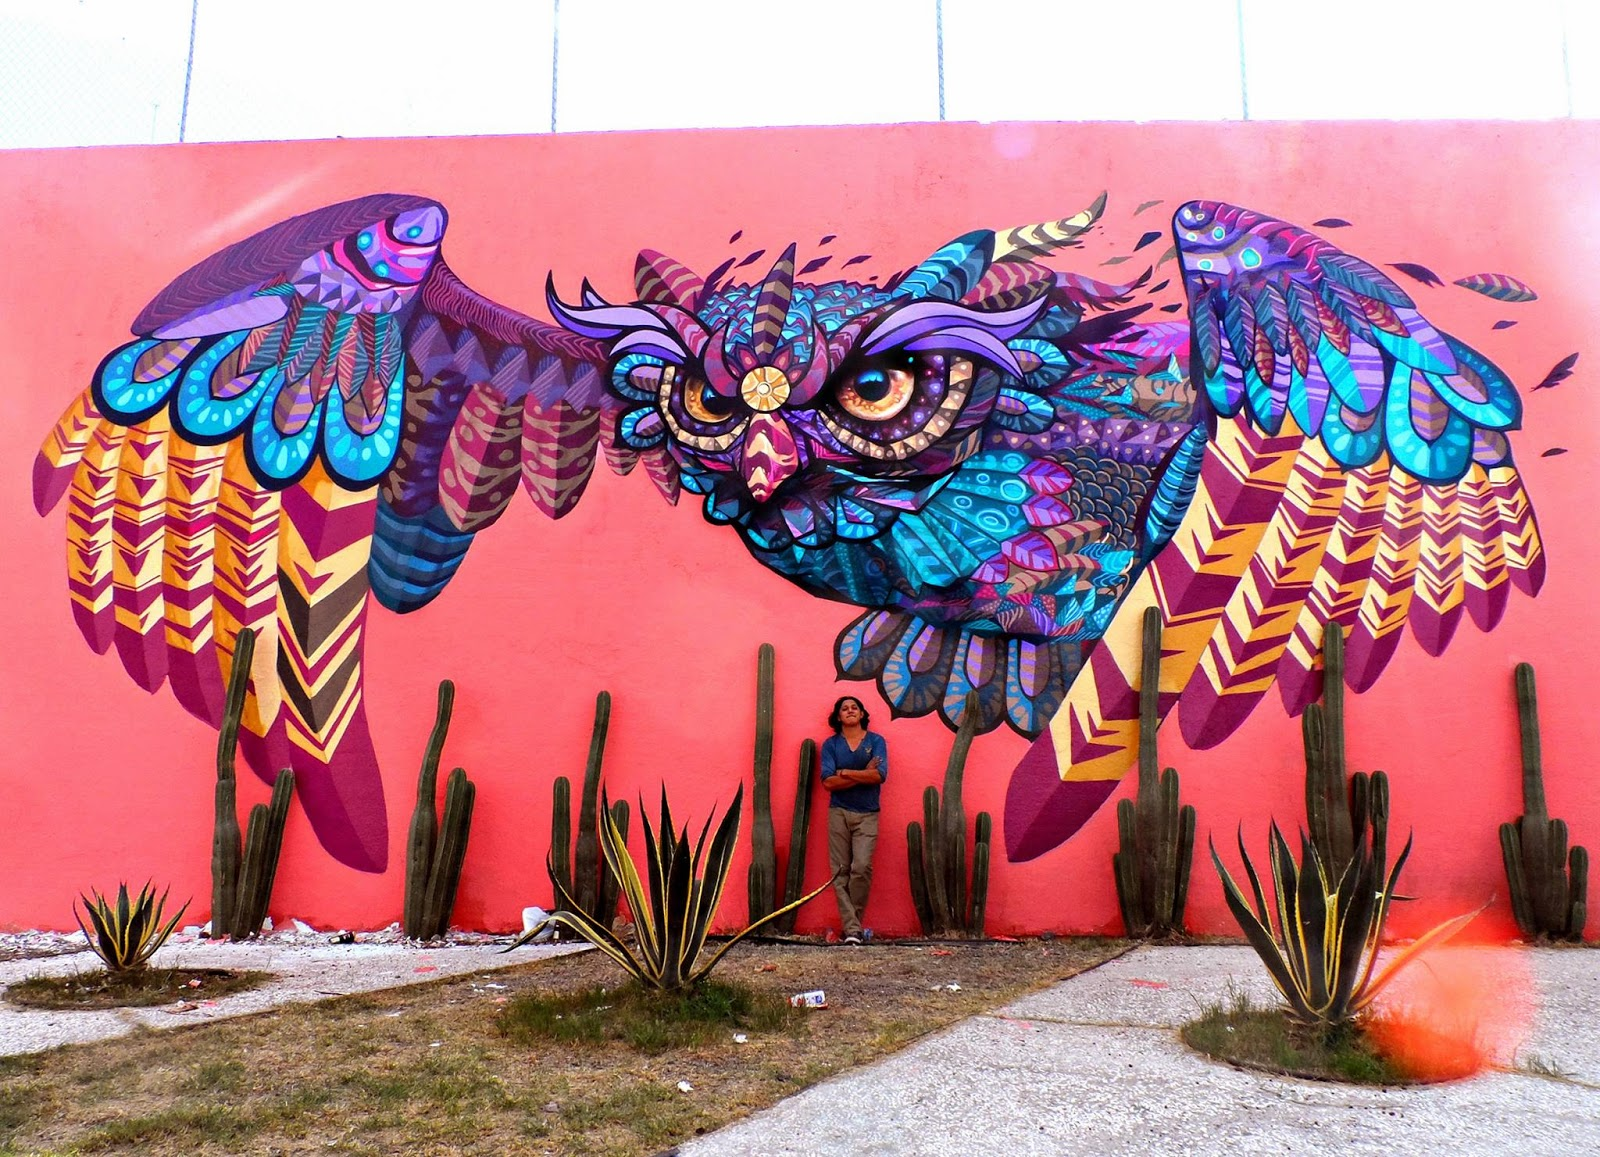 farid rueda unveils a new series of murals on the streets